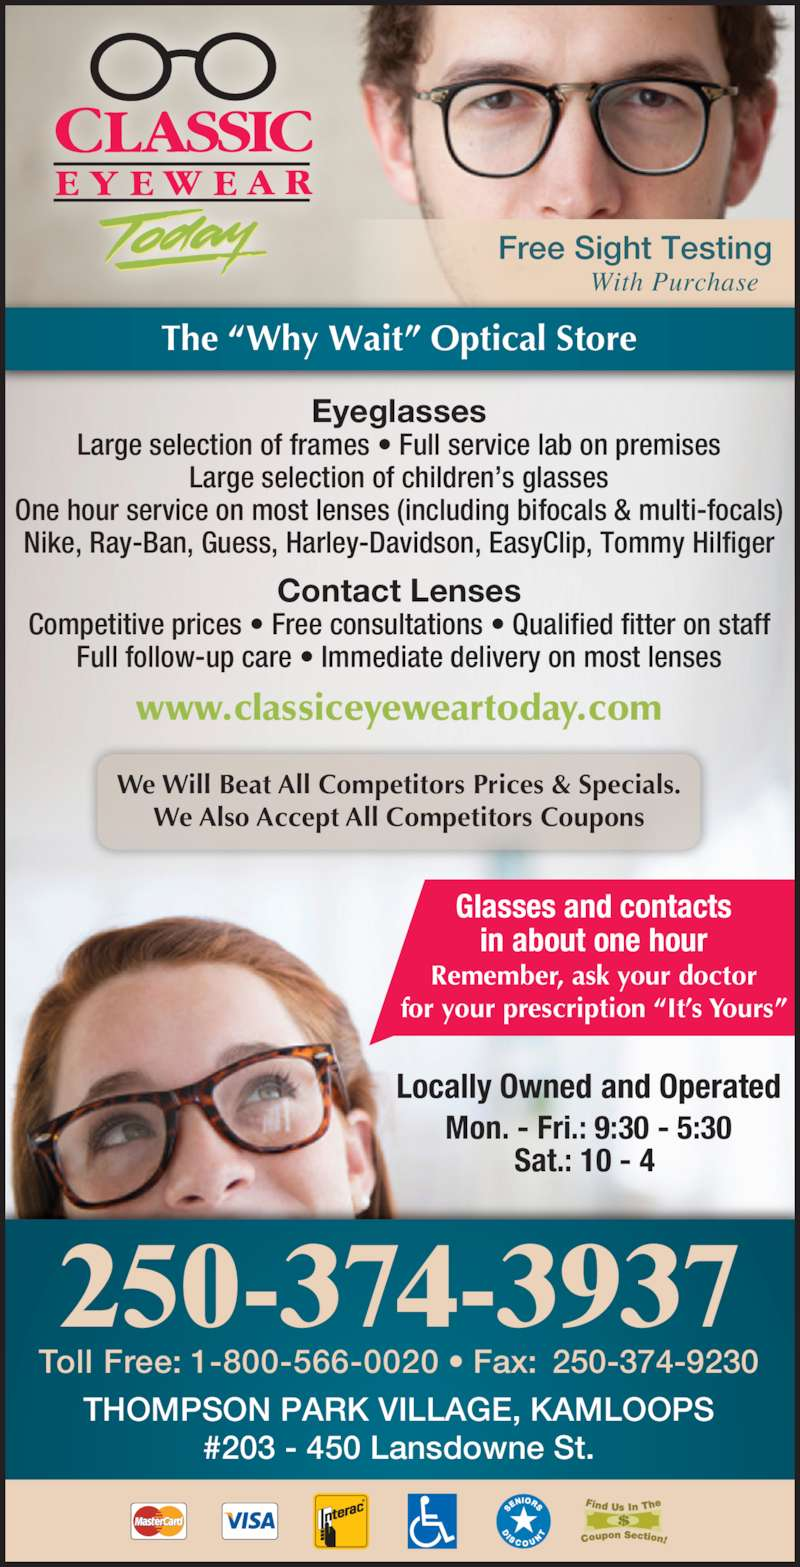 """Classic Eyewear Today (250-374-3937) - Display Ad - Mon. - Fri.: 9:30 - 5:30 Sat.: 10 - 4  Locally Owned and Operated Remember, ask your doctor for your prescription """"It's Yours"""" Glasses and contacts in about one hour We Will Beat All Competitors Prices & Specials. We Also Accept All Competitors Coupons www.classiceyeweartoday.com Toll Free: 1-800-566-0020 • Fax:  250-374-9230 THOMPSON PARK VILLAGE, KAMLOOPS Eyeglasses Large selection of frames • Full service lab on premises Large selection of children's glasses One hour service on most lenses (including bifocals & multi-focals) Nike, Ray-Ban, Guess, Harley-Davidson, EasyClip, Tommy Hilfiger Contact Lenses Competitive prices • Free consultations • Qualified fitter on staff Full follow-up care • Immediate delivery on most lenses #203 - 450 Lansdowne St. With Purchase Free Sight Testing  250-374-3937 The """"Why Wait"""" Optical Store"""